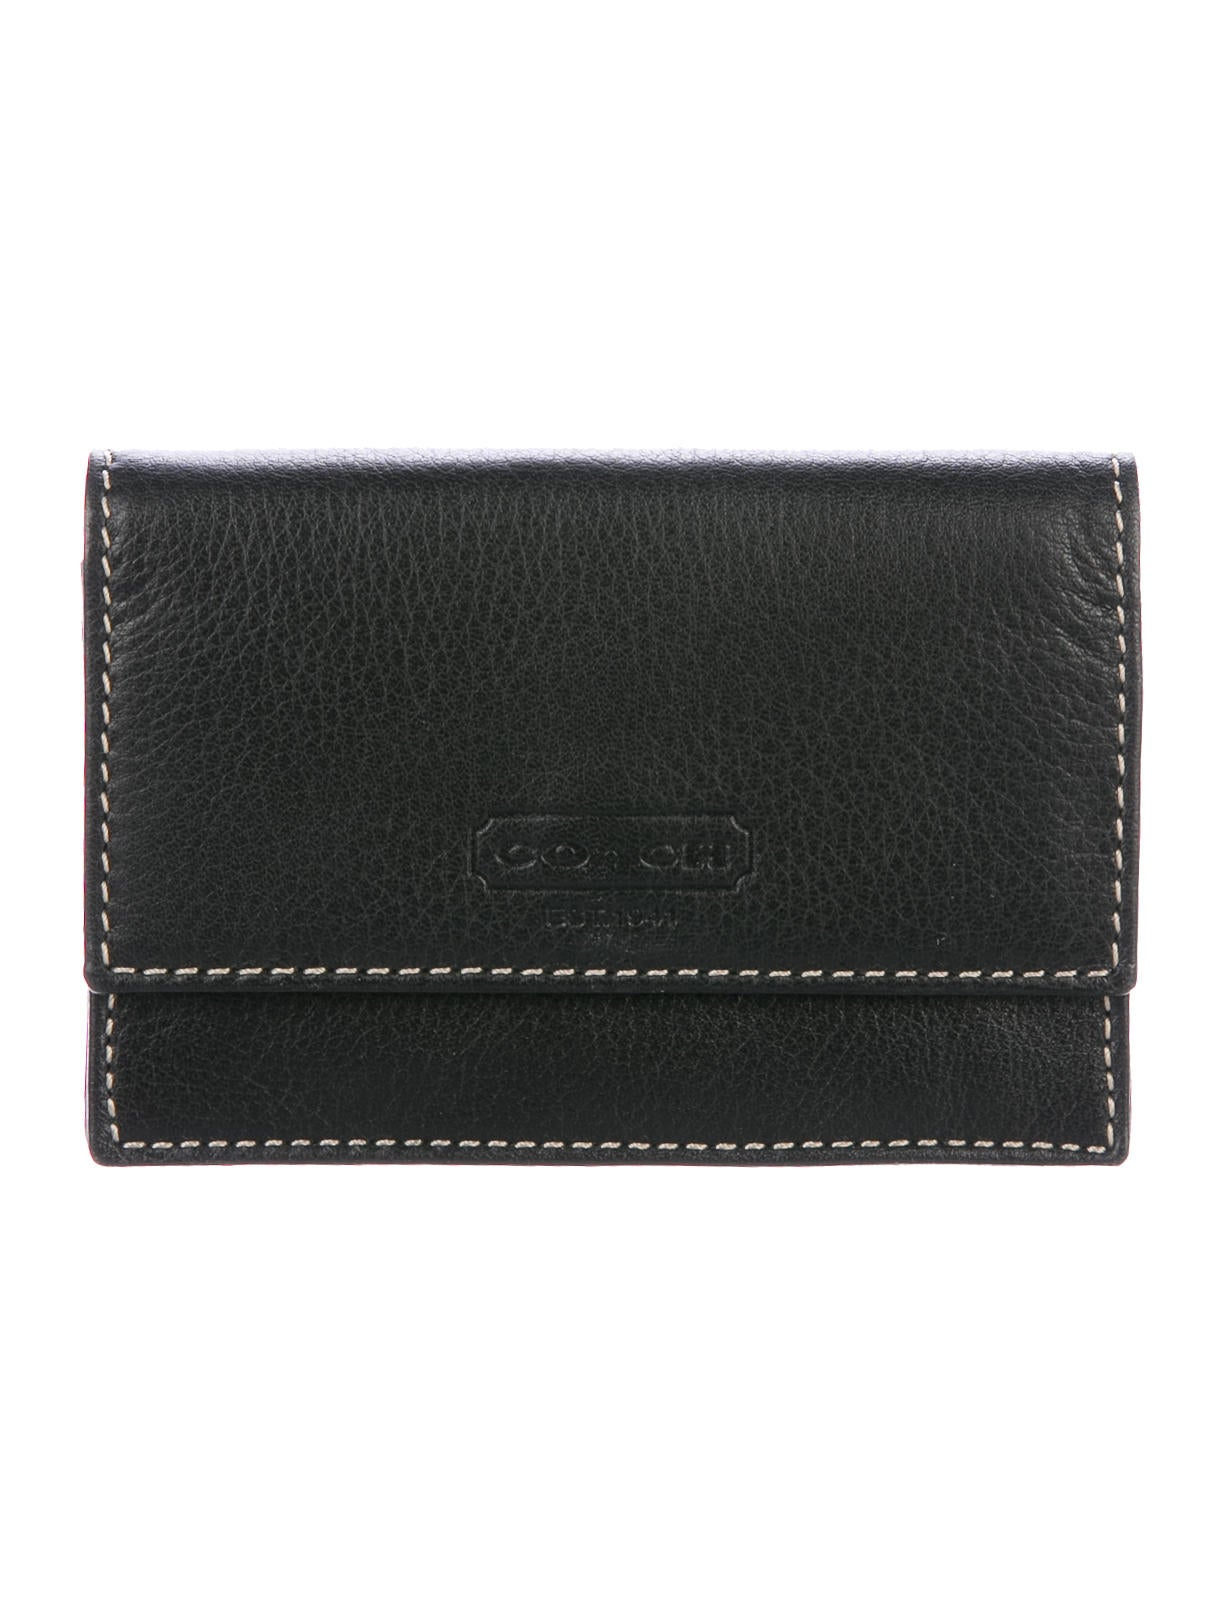 Coach Grained Leather Business Card Holder w/ Tags - Accessories ...